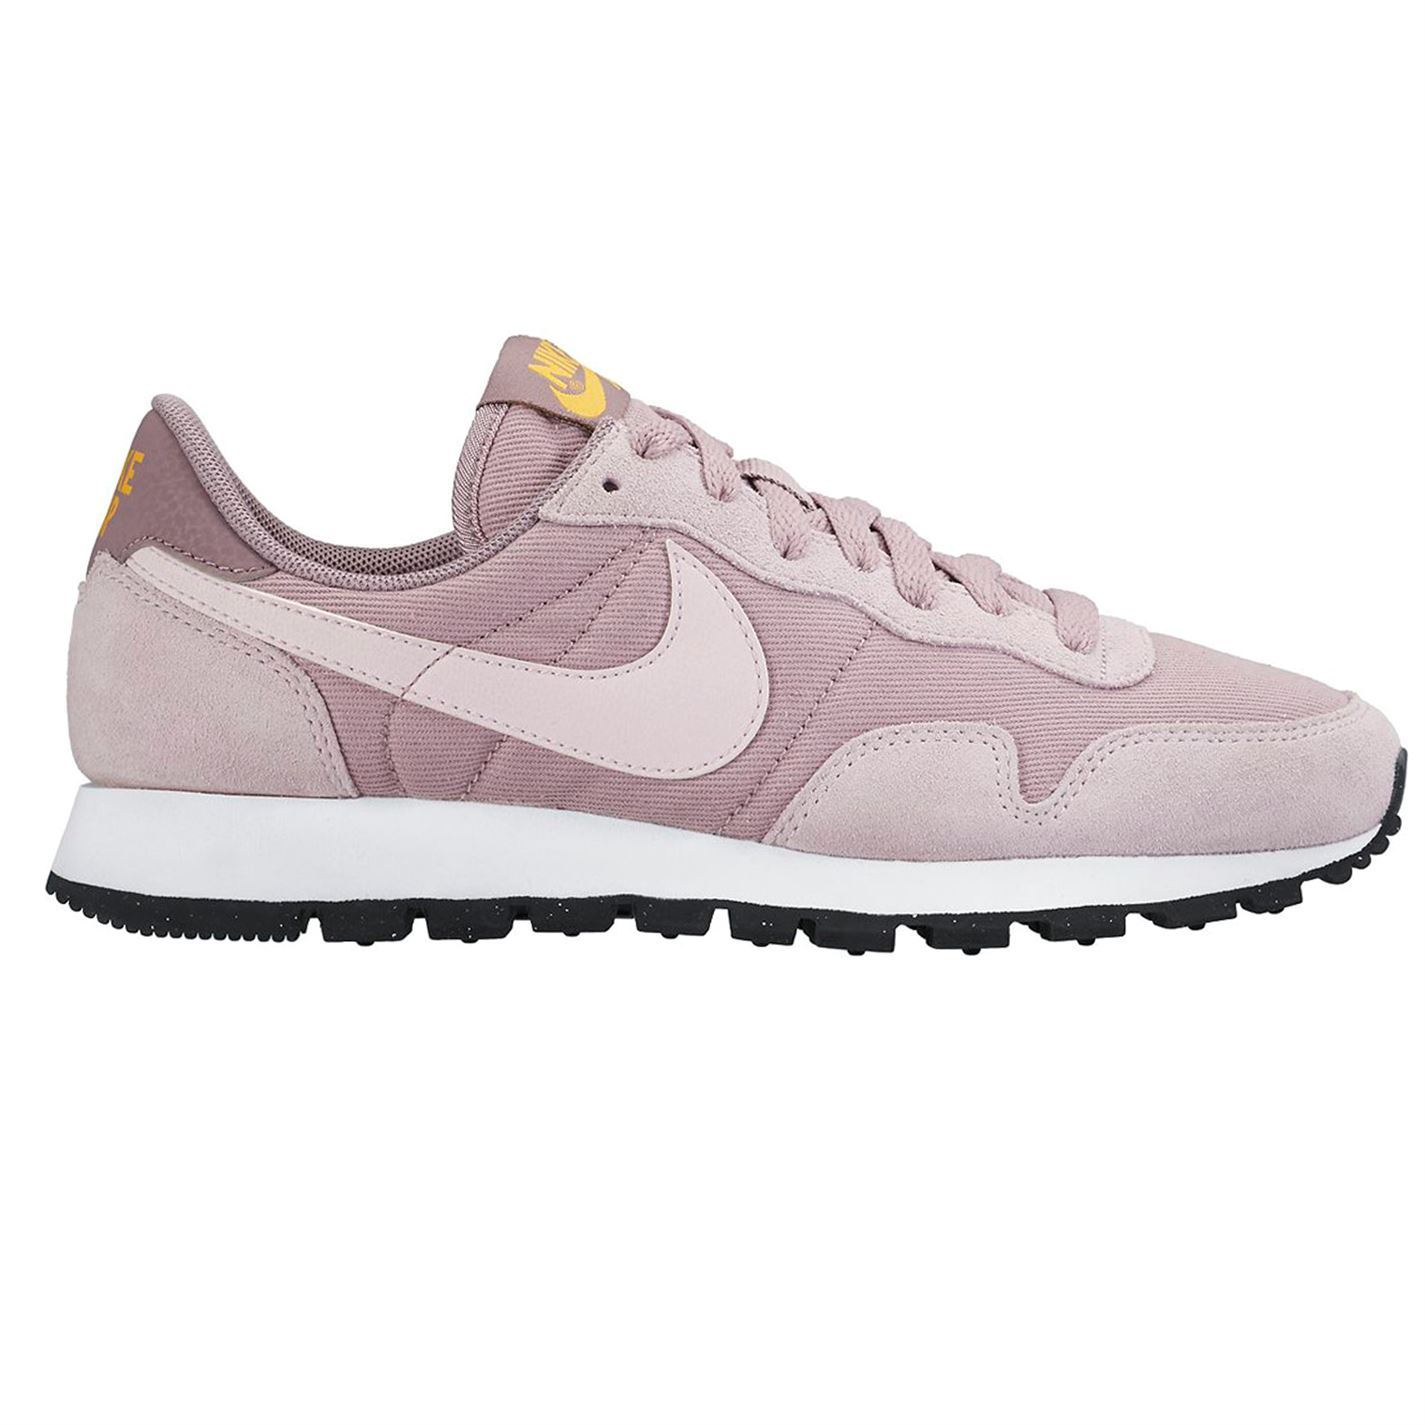 classic fit c3afe febf4 Nike Air Pegasus Running Shoes Womens Jogging Trainers ...